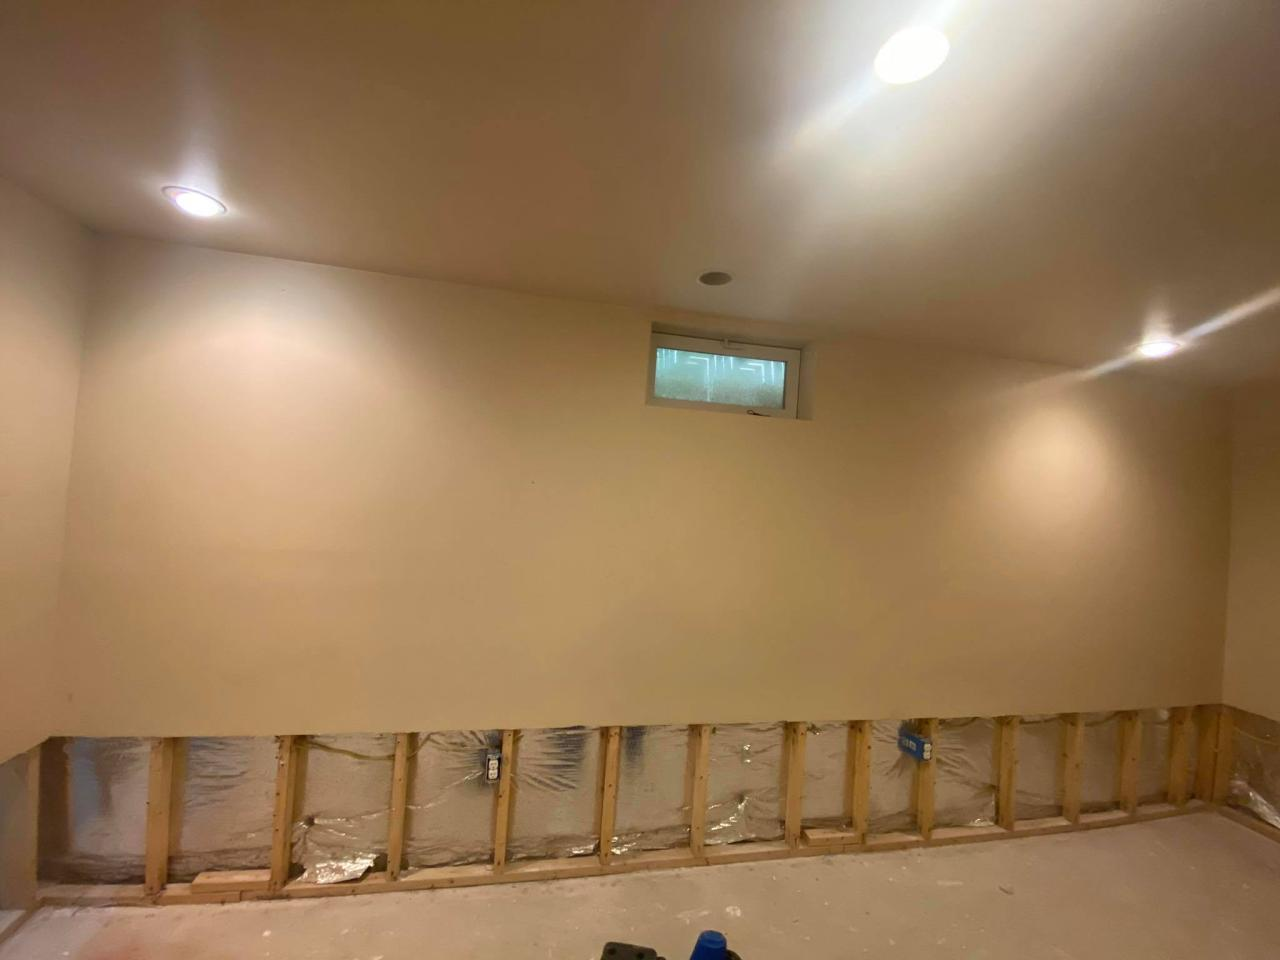 Water Damage & Mold